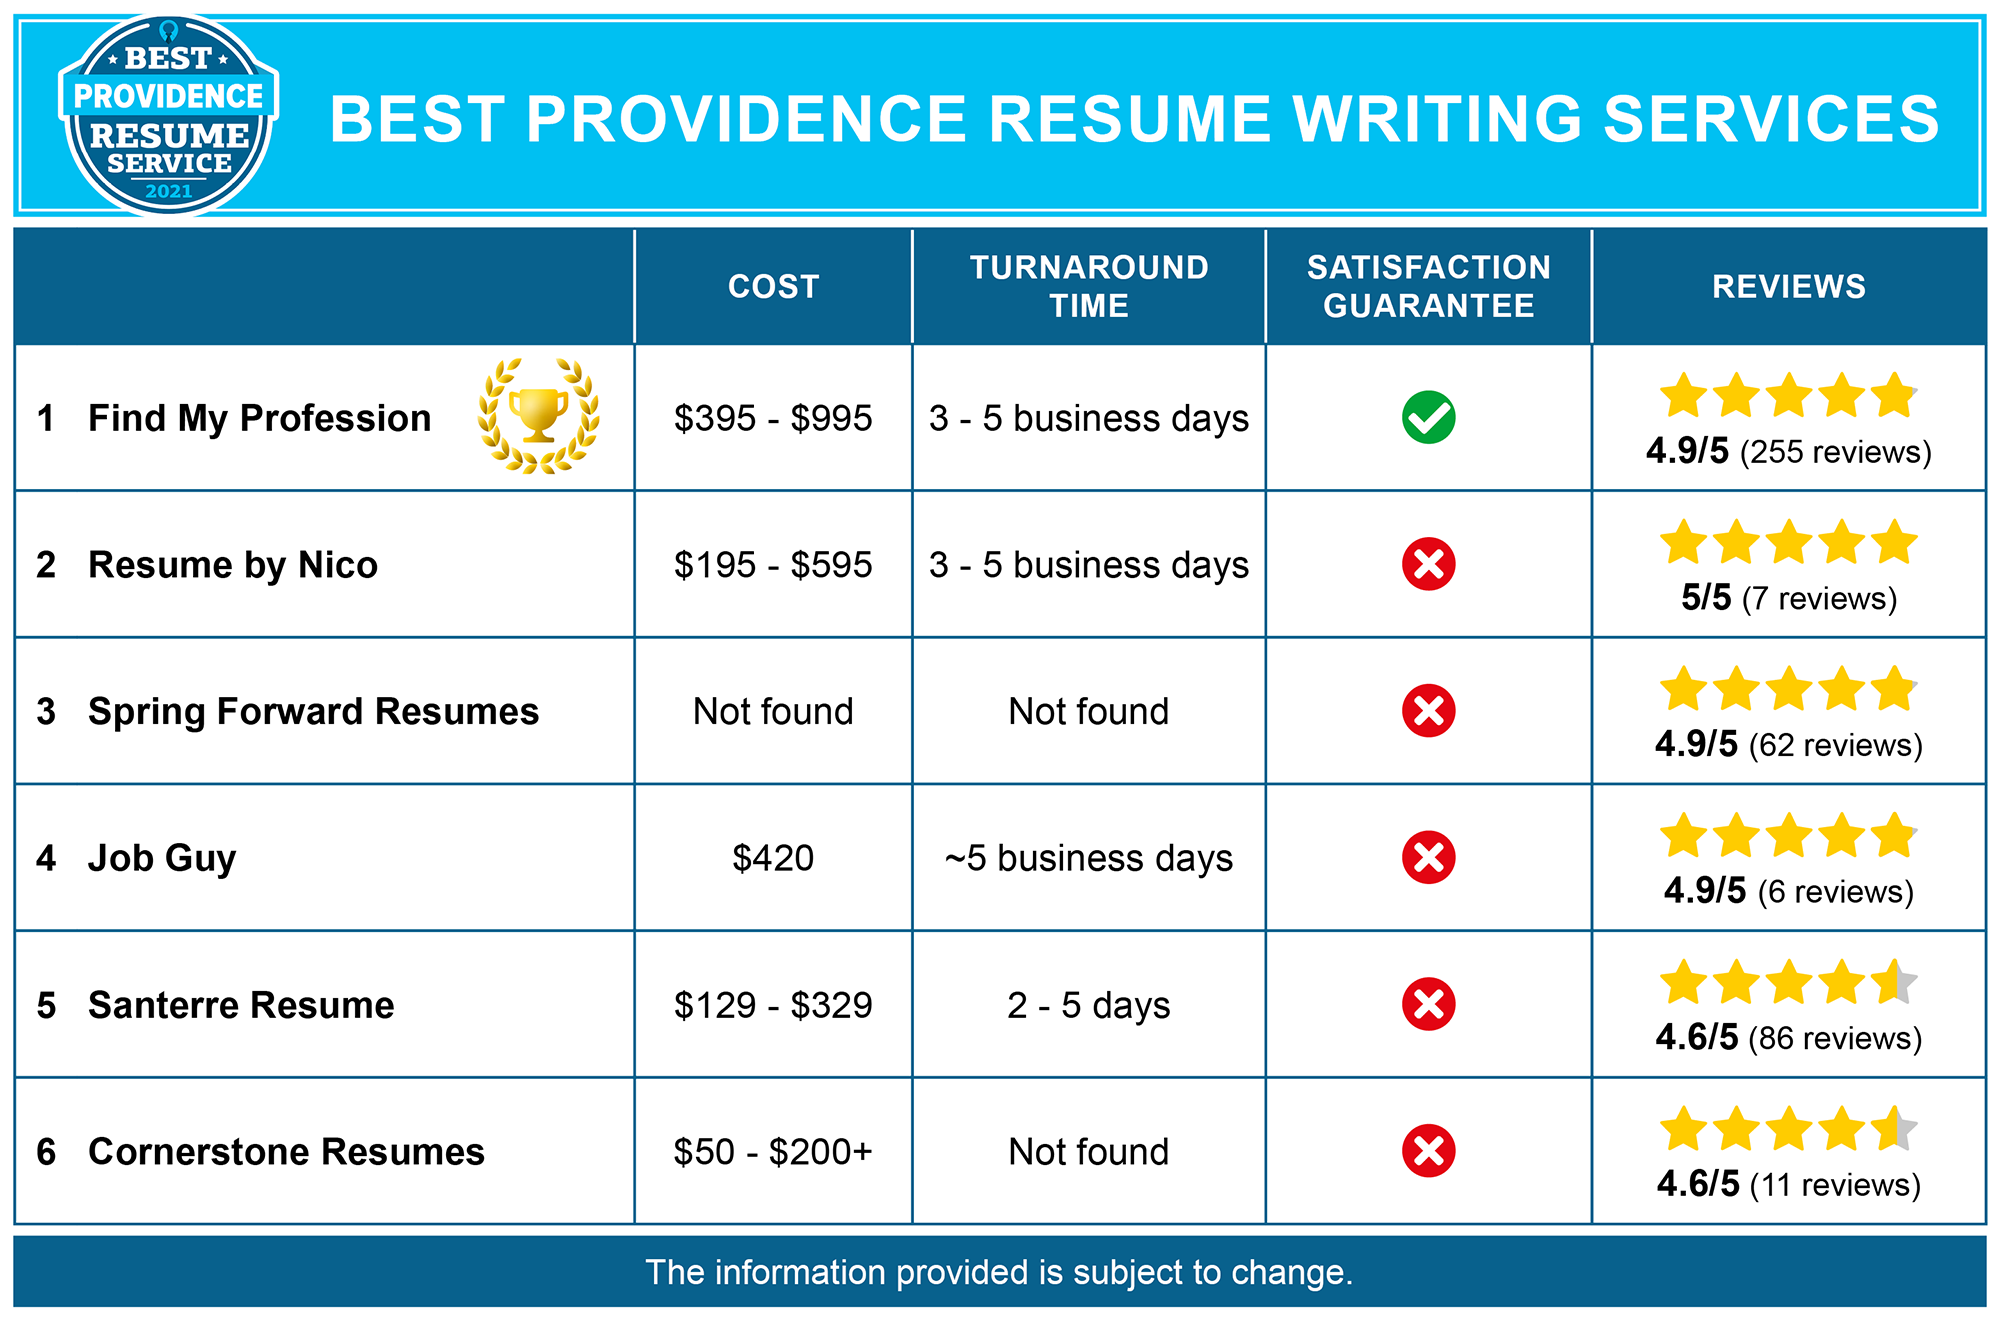 Best Providence Resume Writing Services